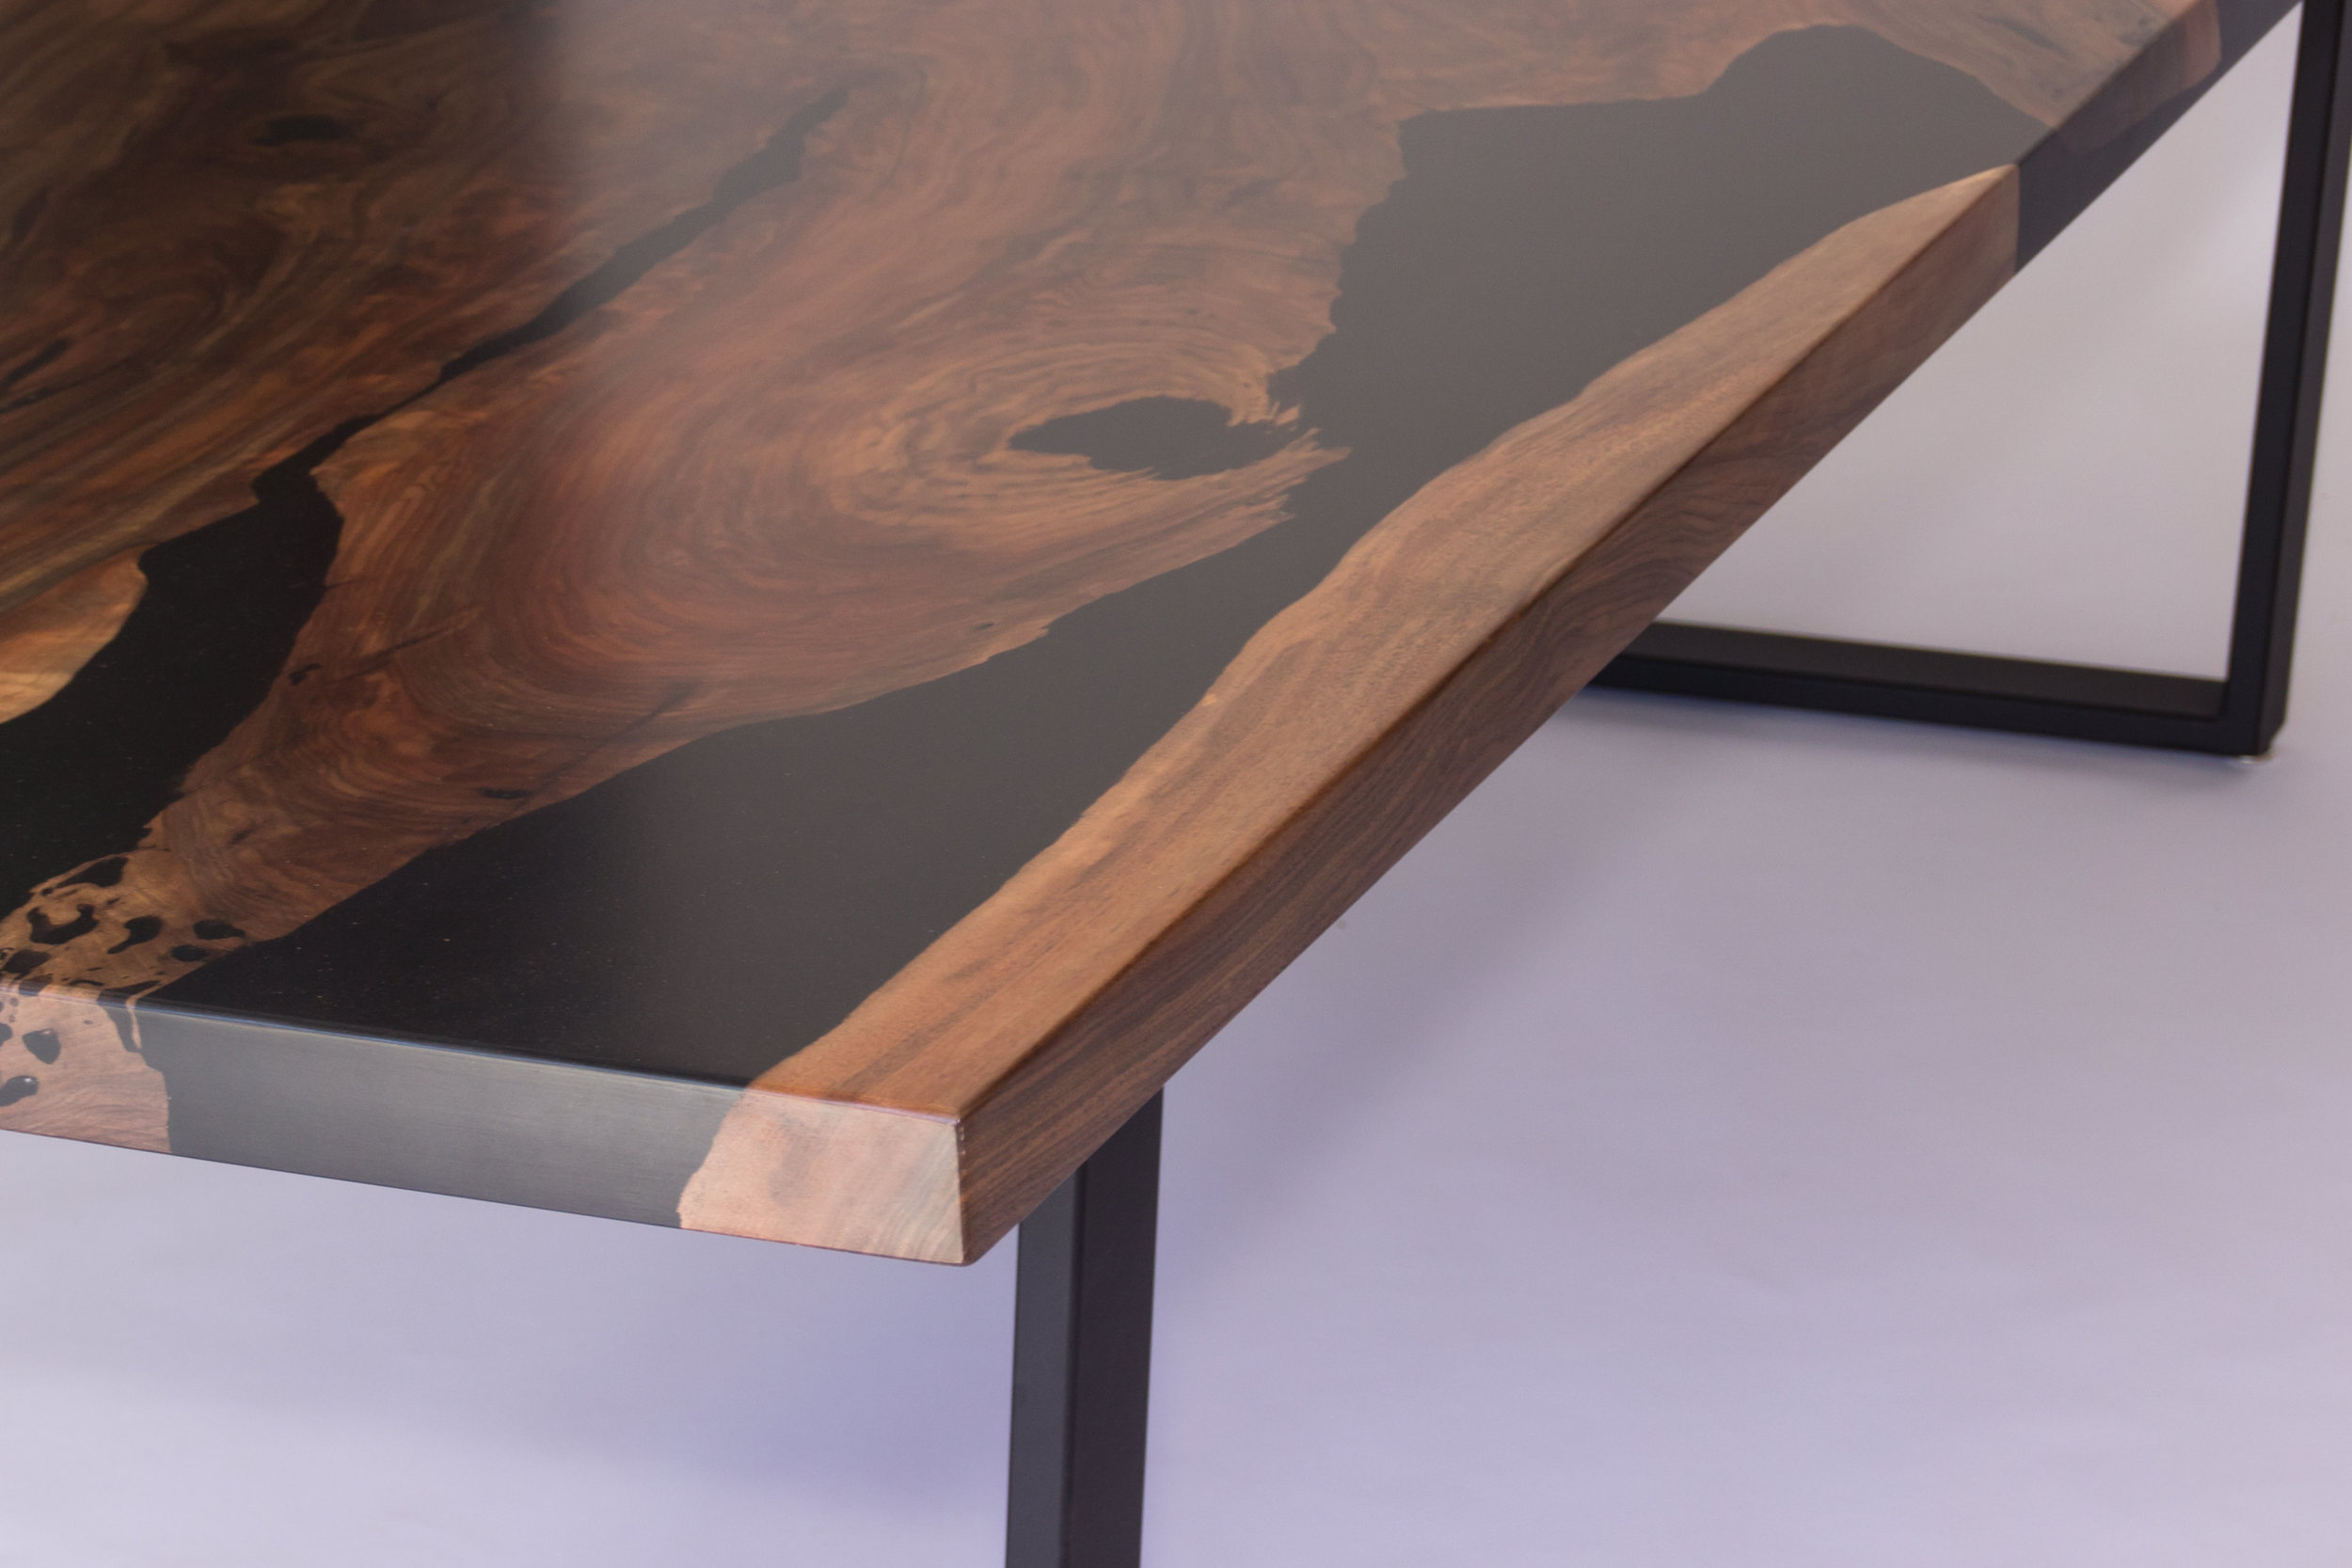 Midnight Bayou Resin Table — Blacktail Studio